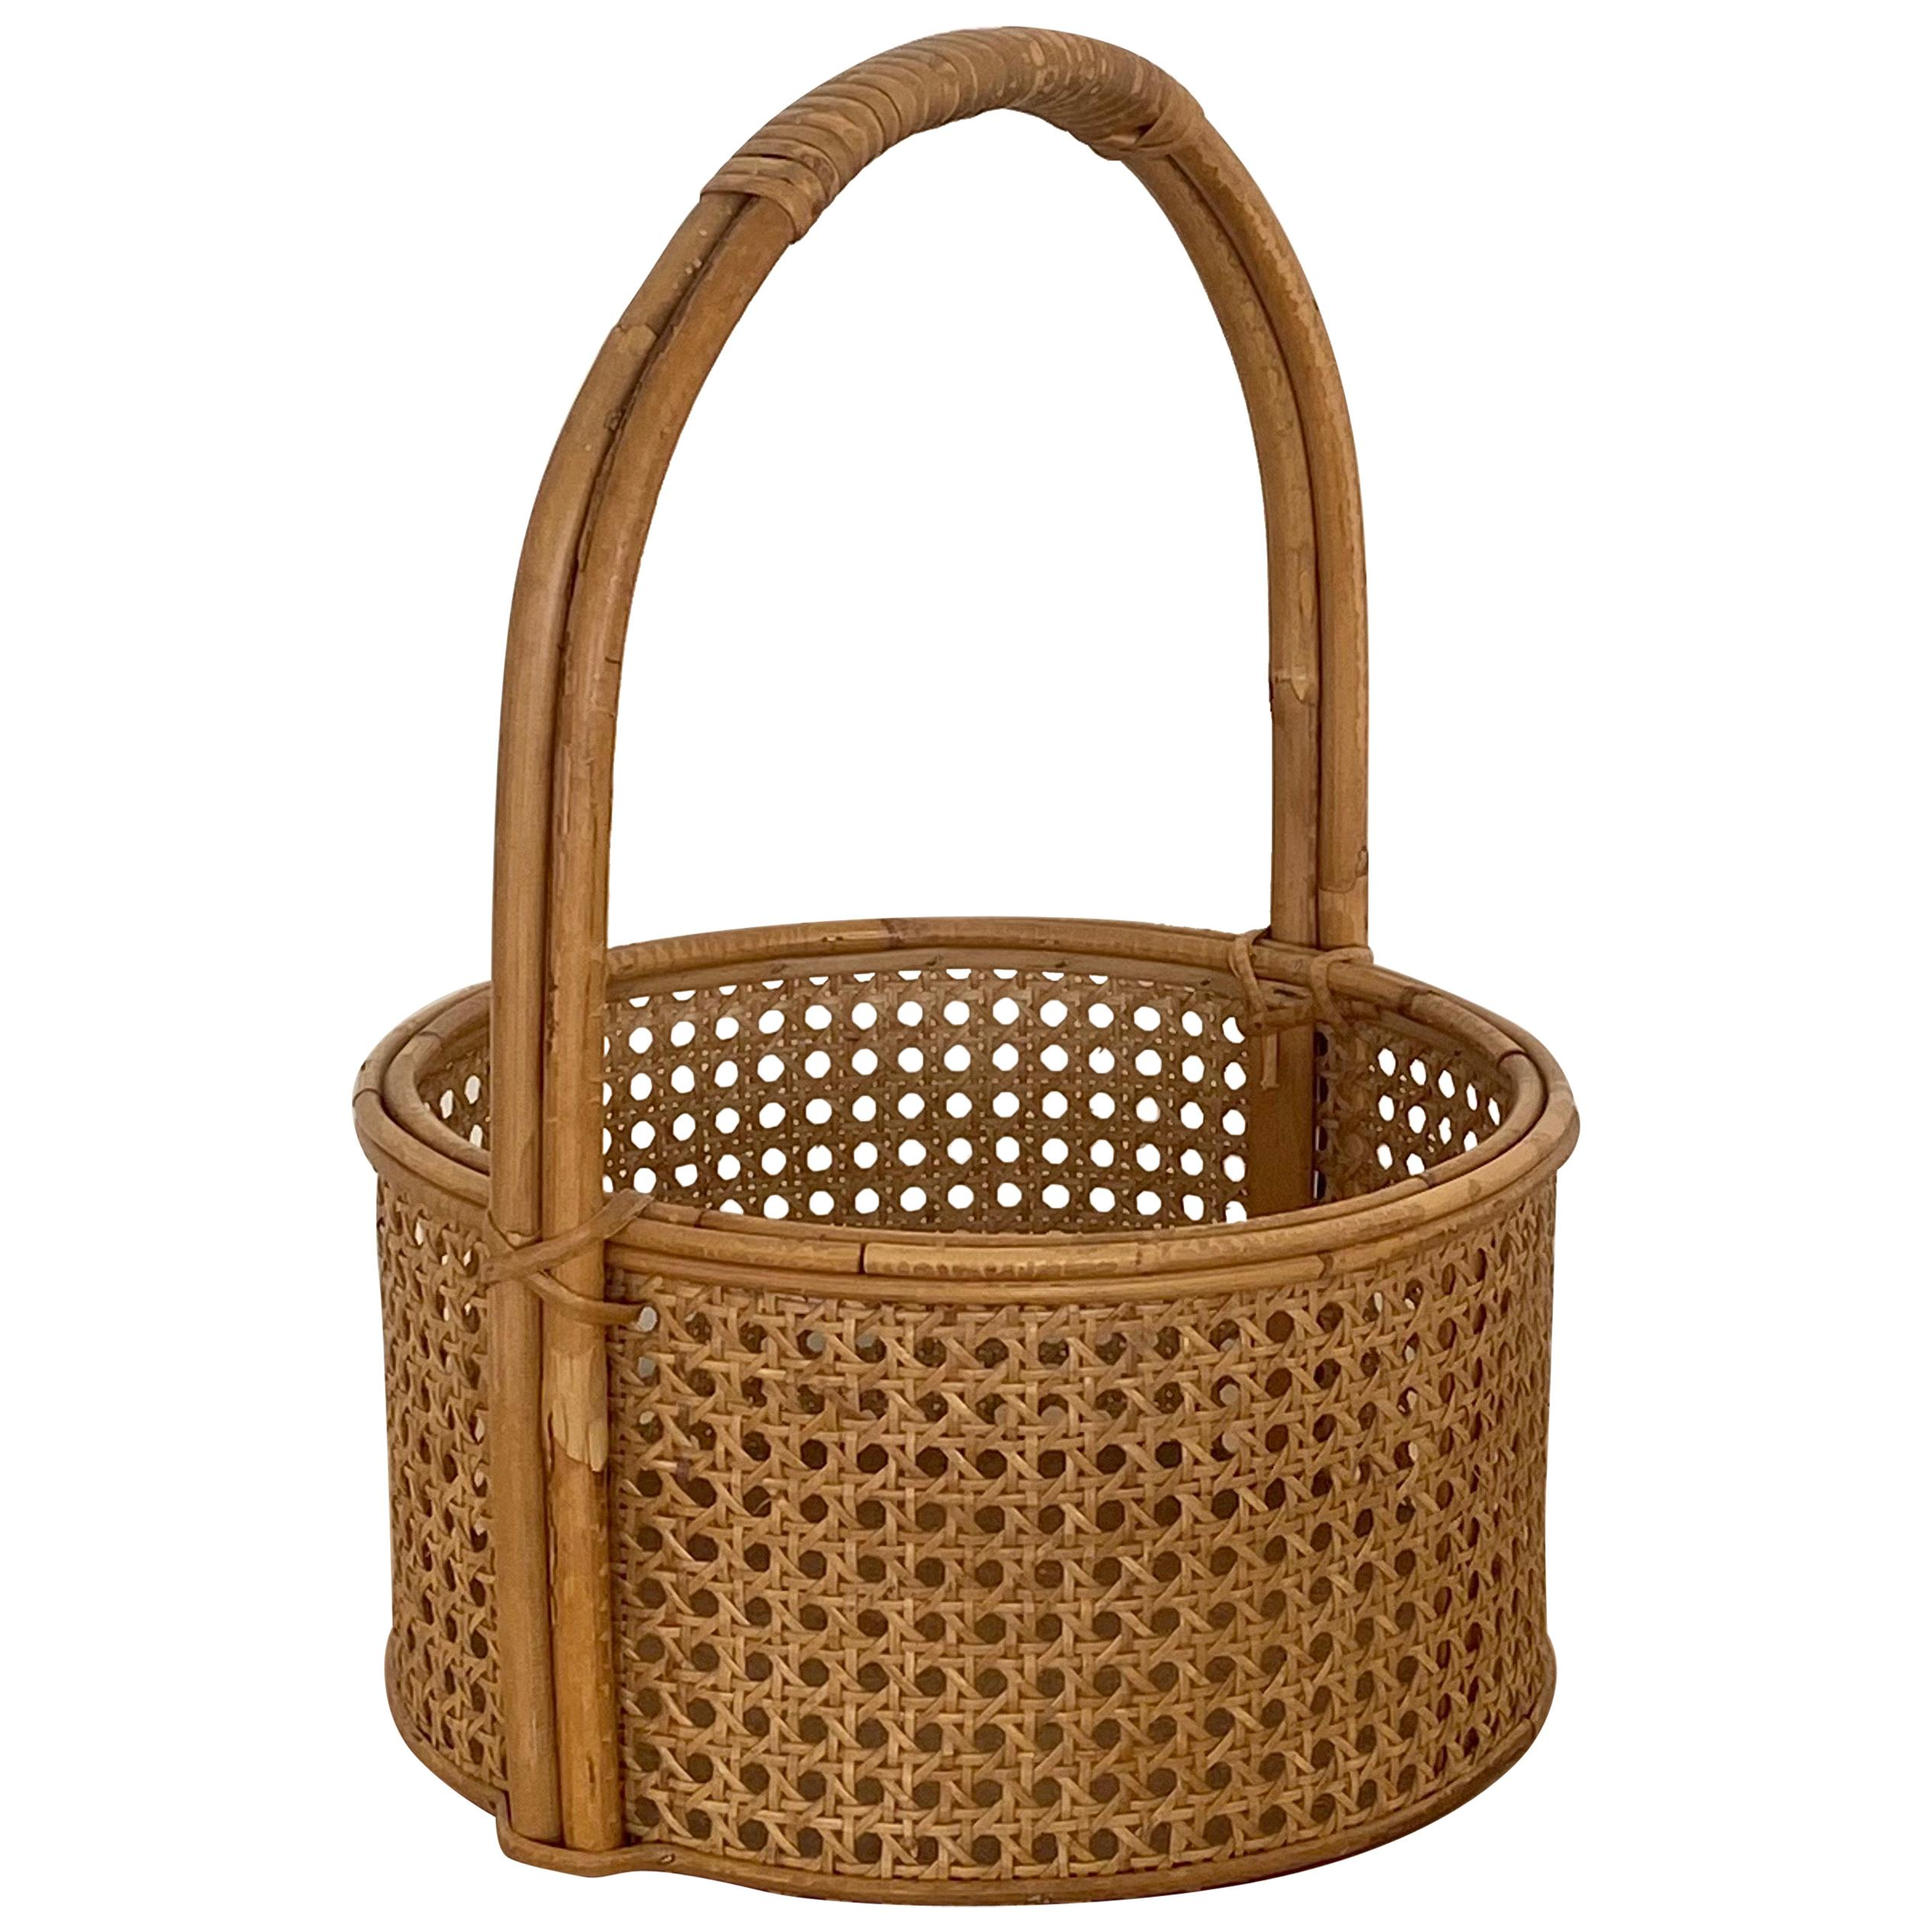 French Rattan and Cane Bottle Holder